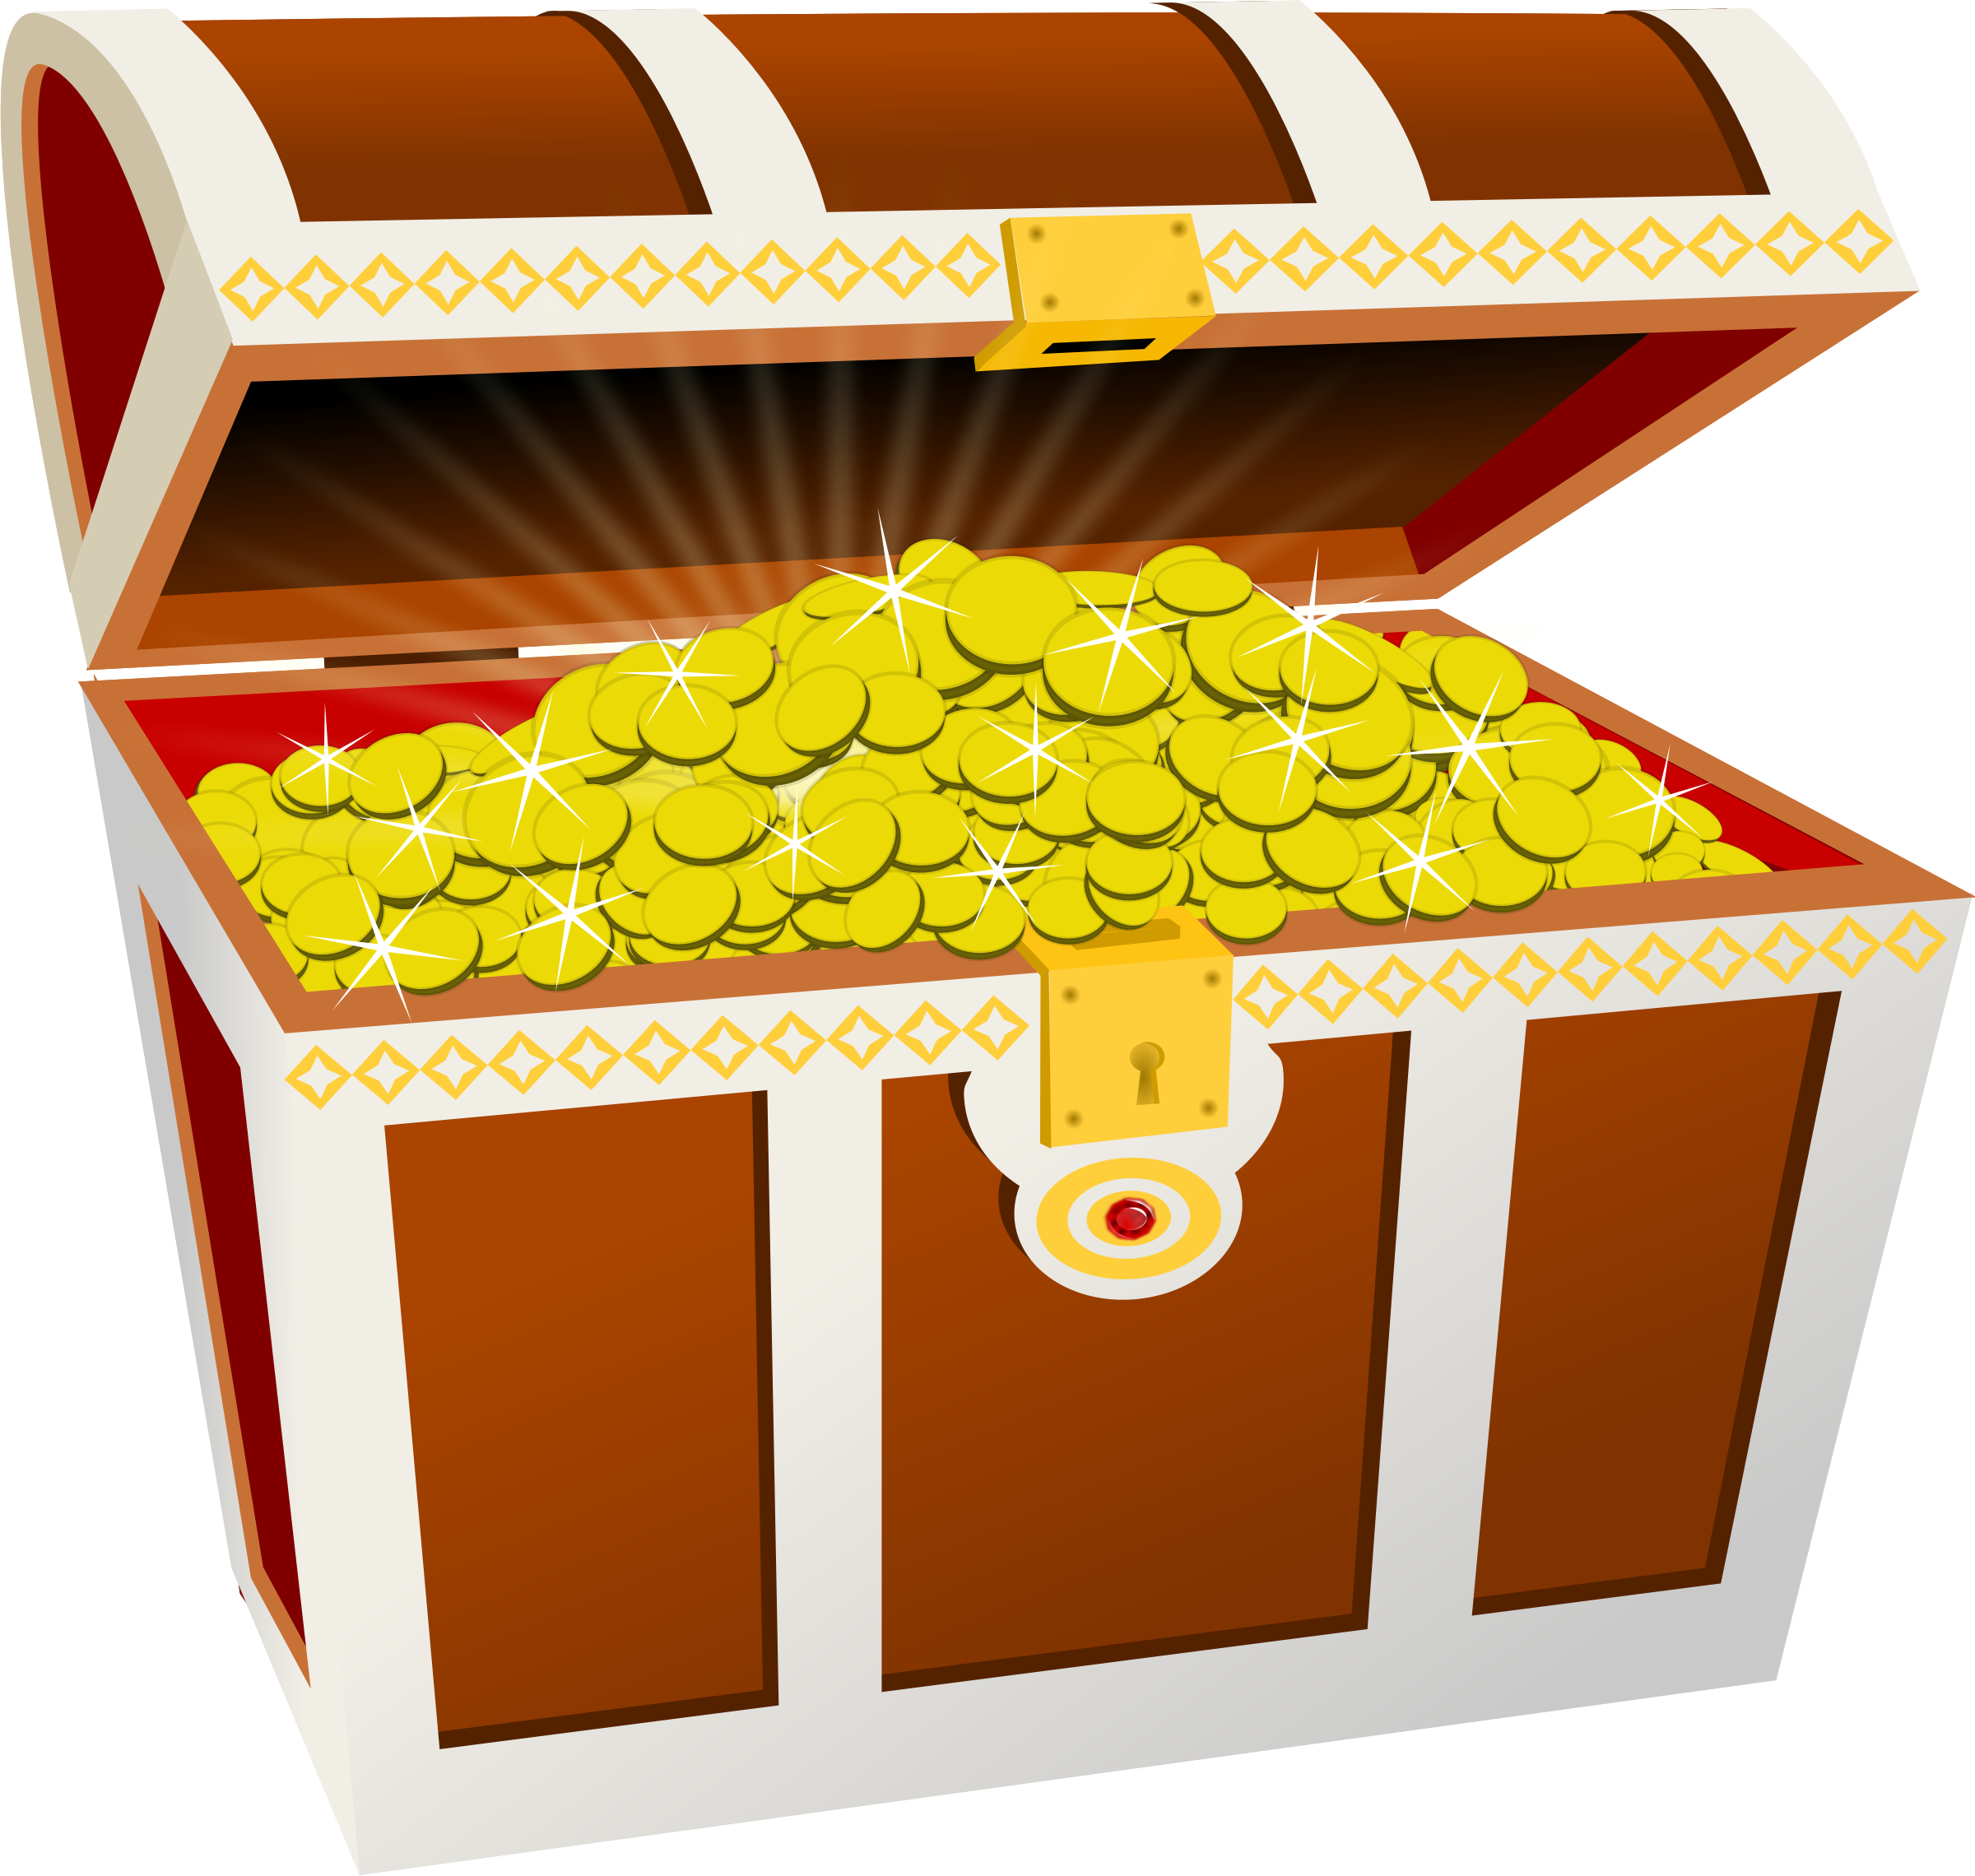 picture royalty free Treasure clipart. Chest big image png